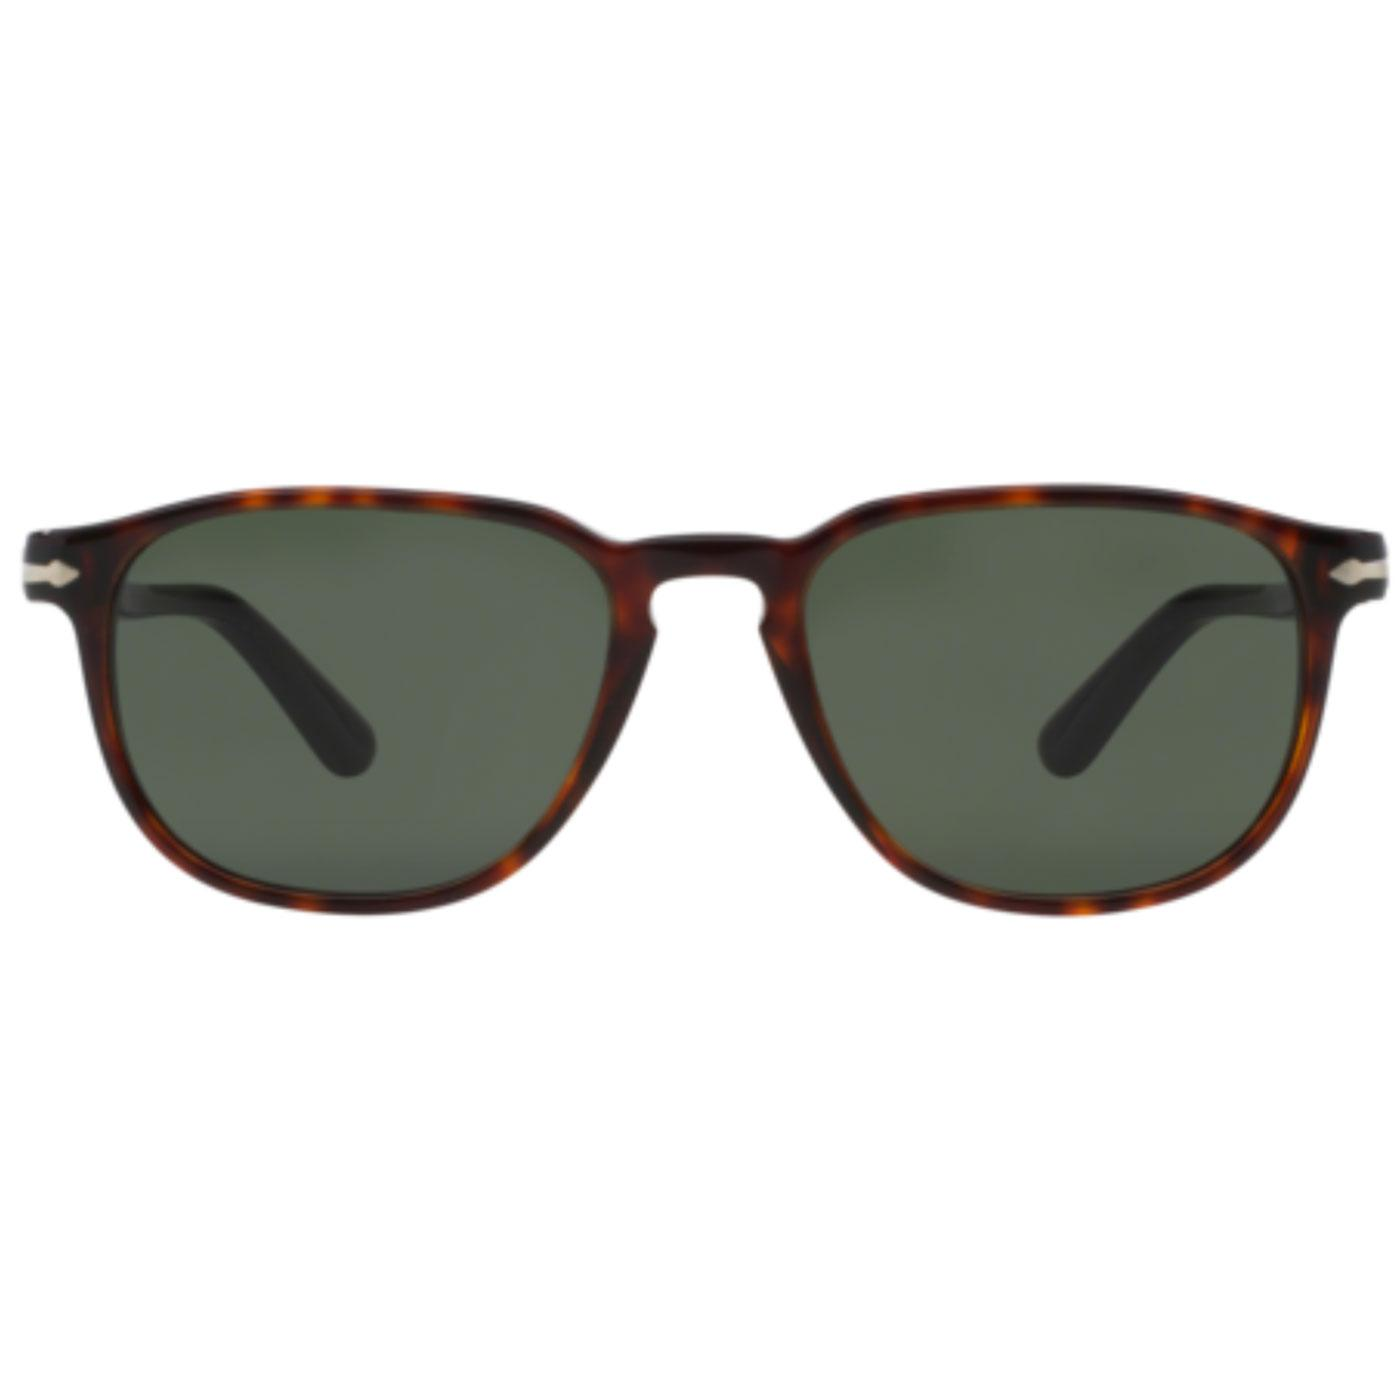 PERSOL Men's Retro 50s Squared Sunglasses Havana